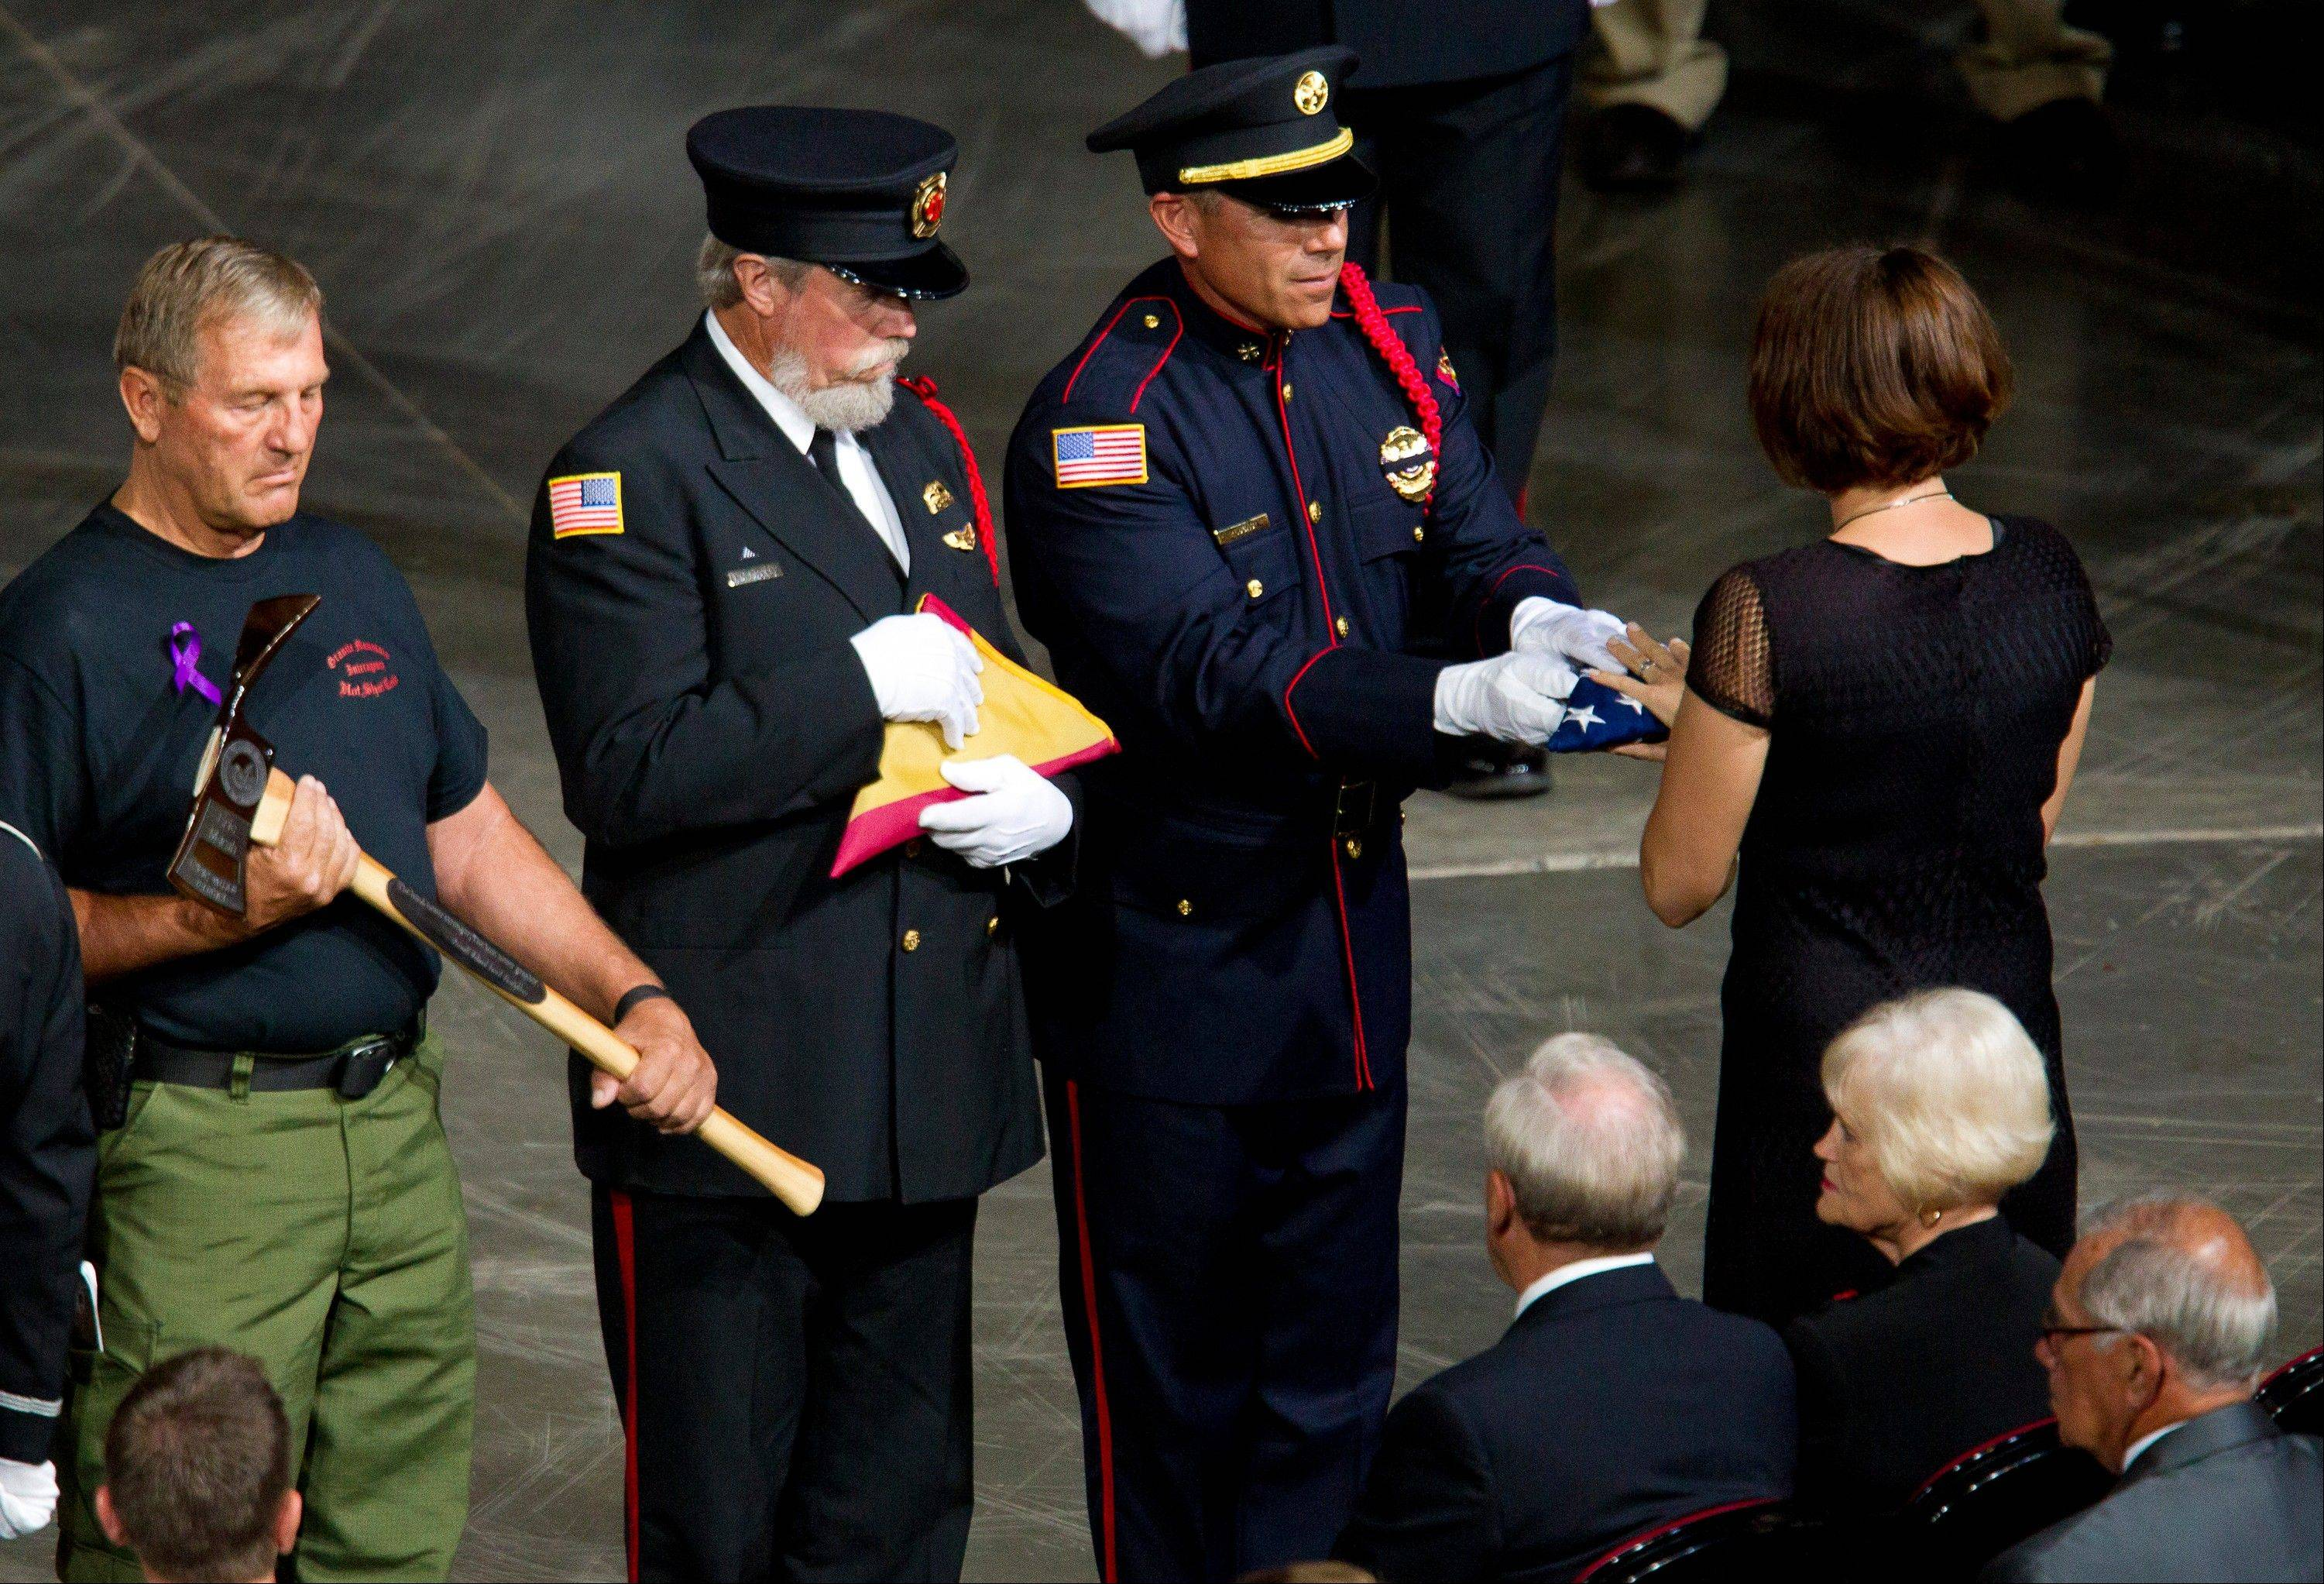 A flag is presented to Juliann Ashcraft, widow of fallen firefighter Andrew Ashcraft, during a memorial service for the 19 fallen firefighters at Tim's Toyota Center in Prescott Valley, Ariz. on Tuesday, July 9, 2013.